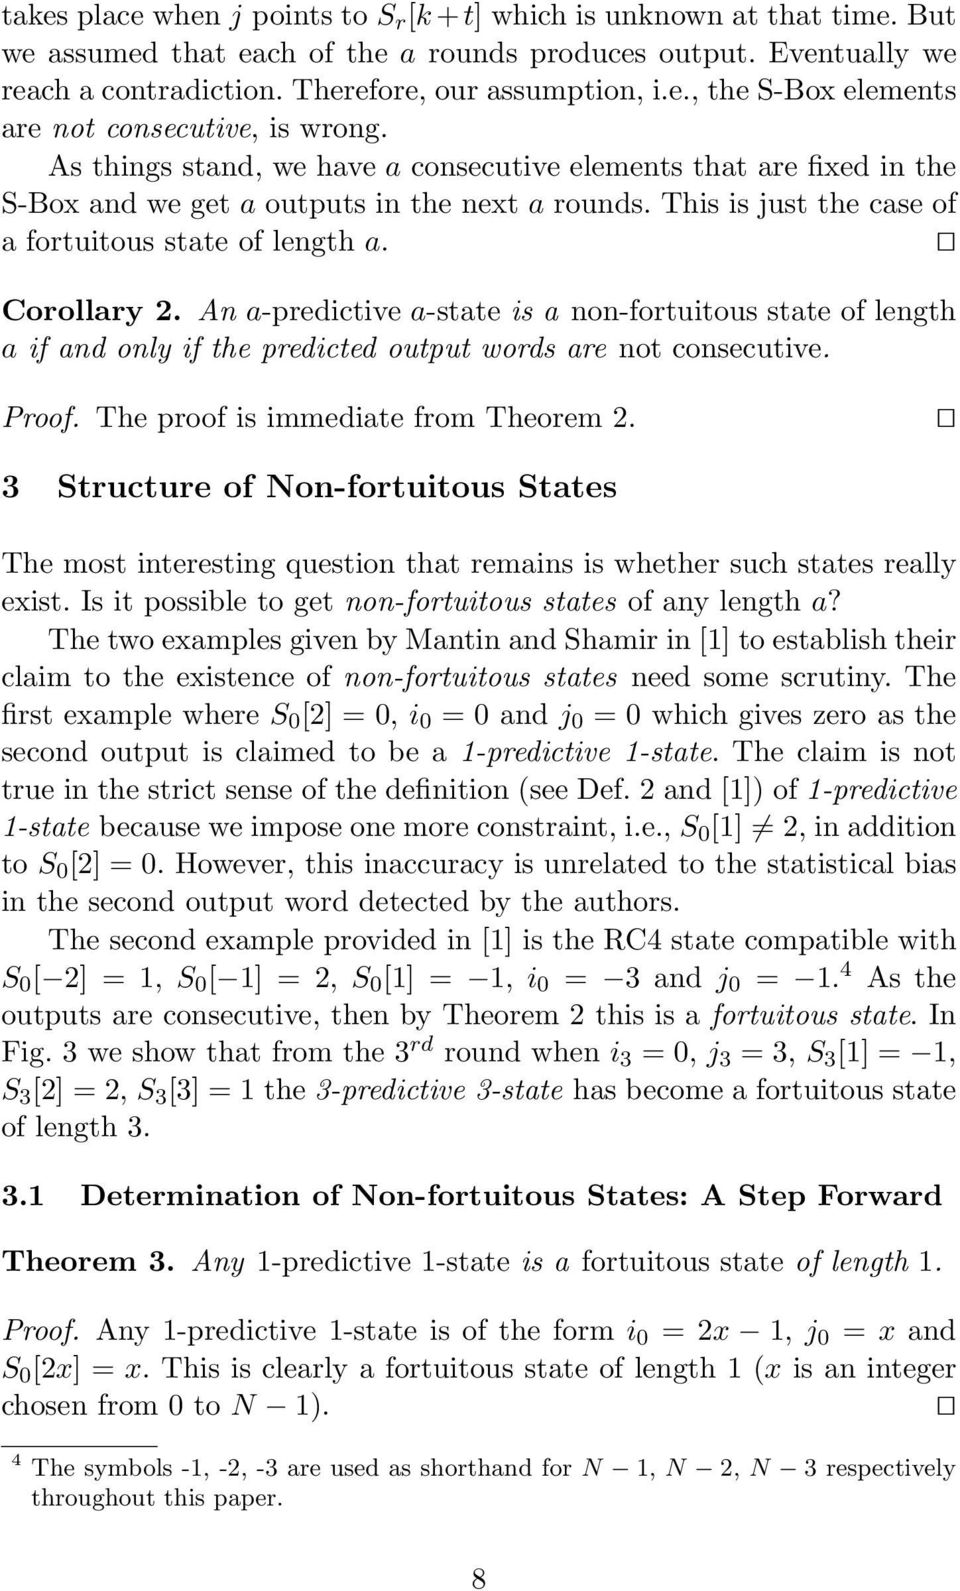 An a-predictive a-state is a non-fortuitous state of length a if and only if the predicted output words are not consecutive. Proof. The proof is immediate from Theorem 2.